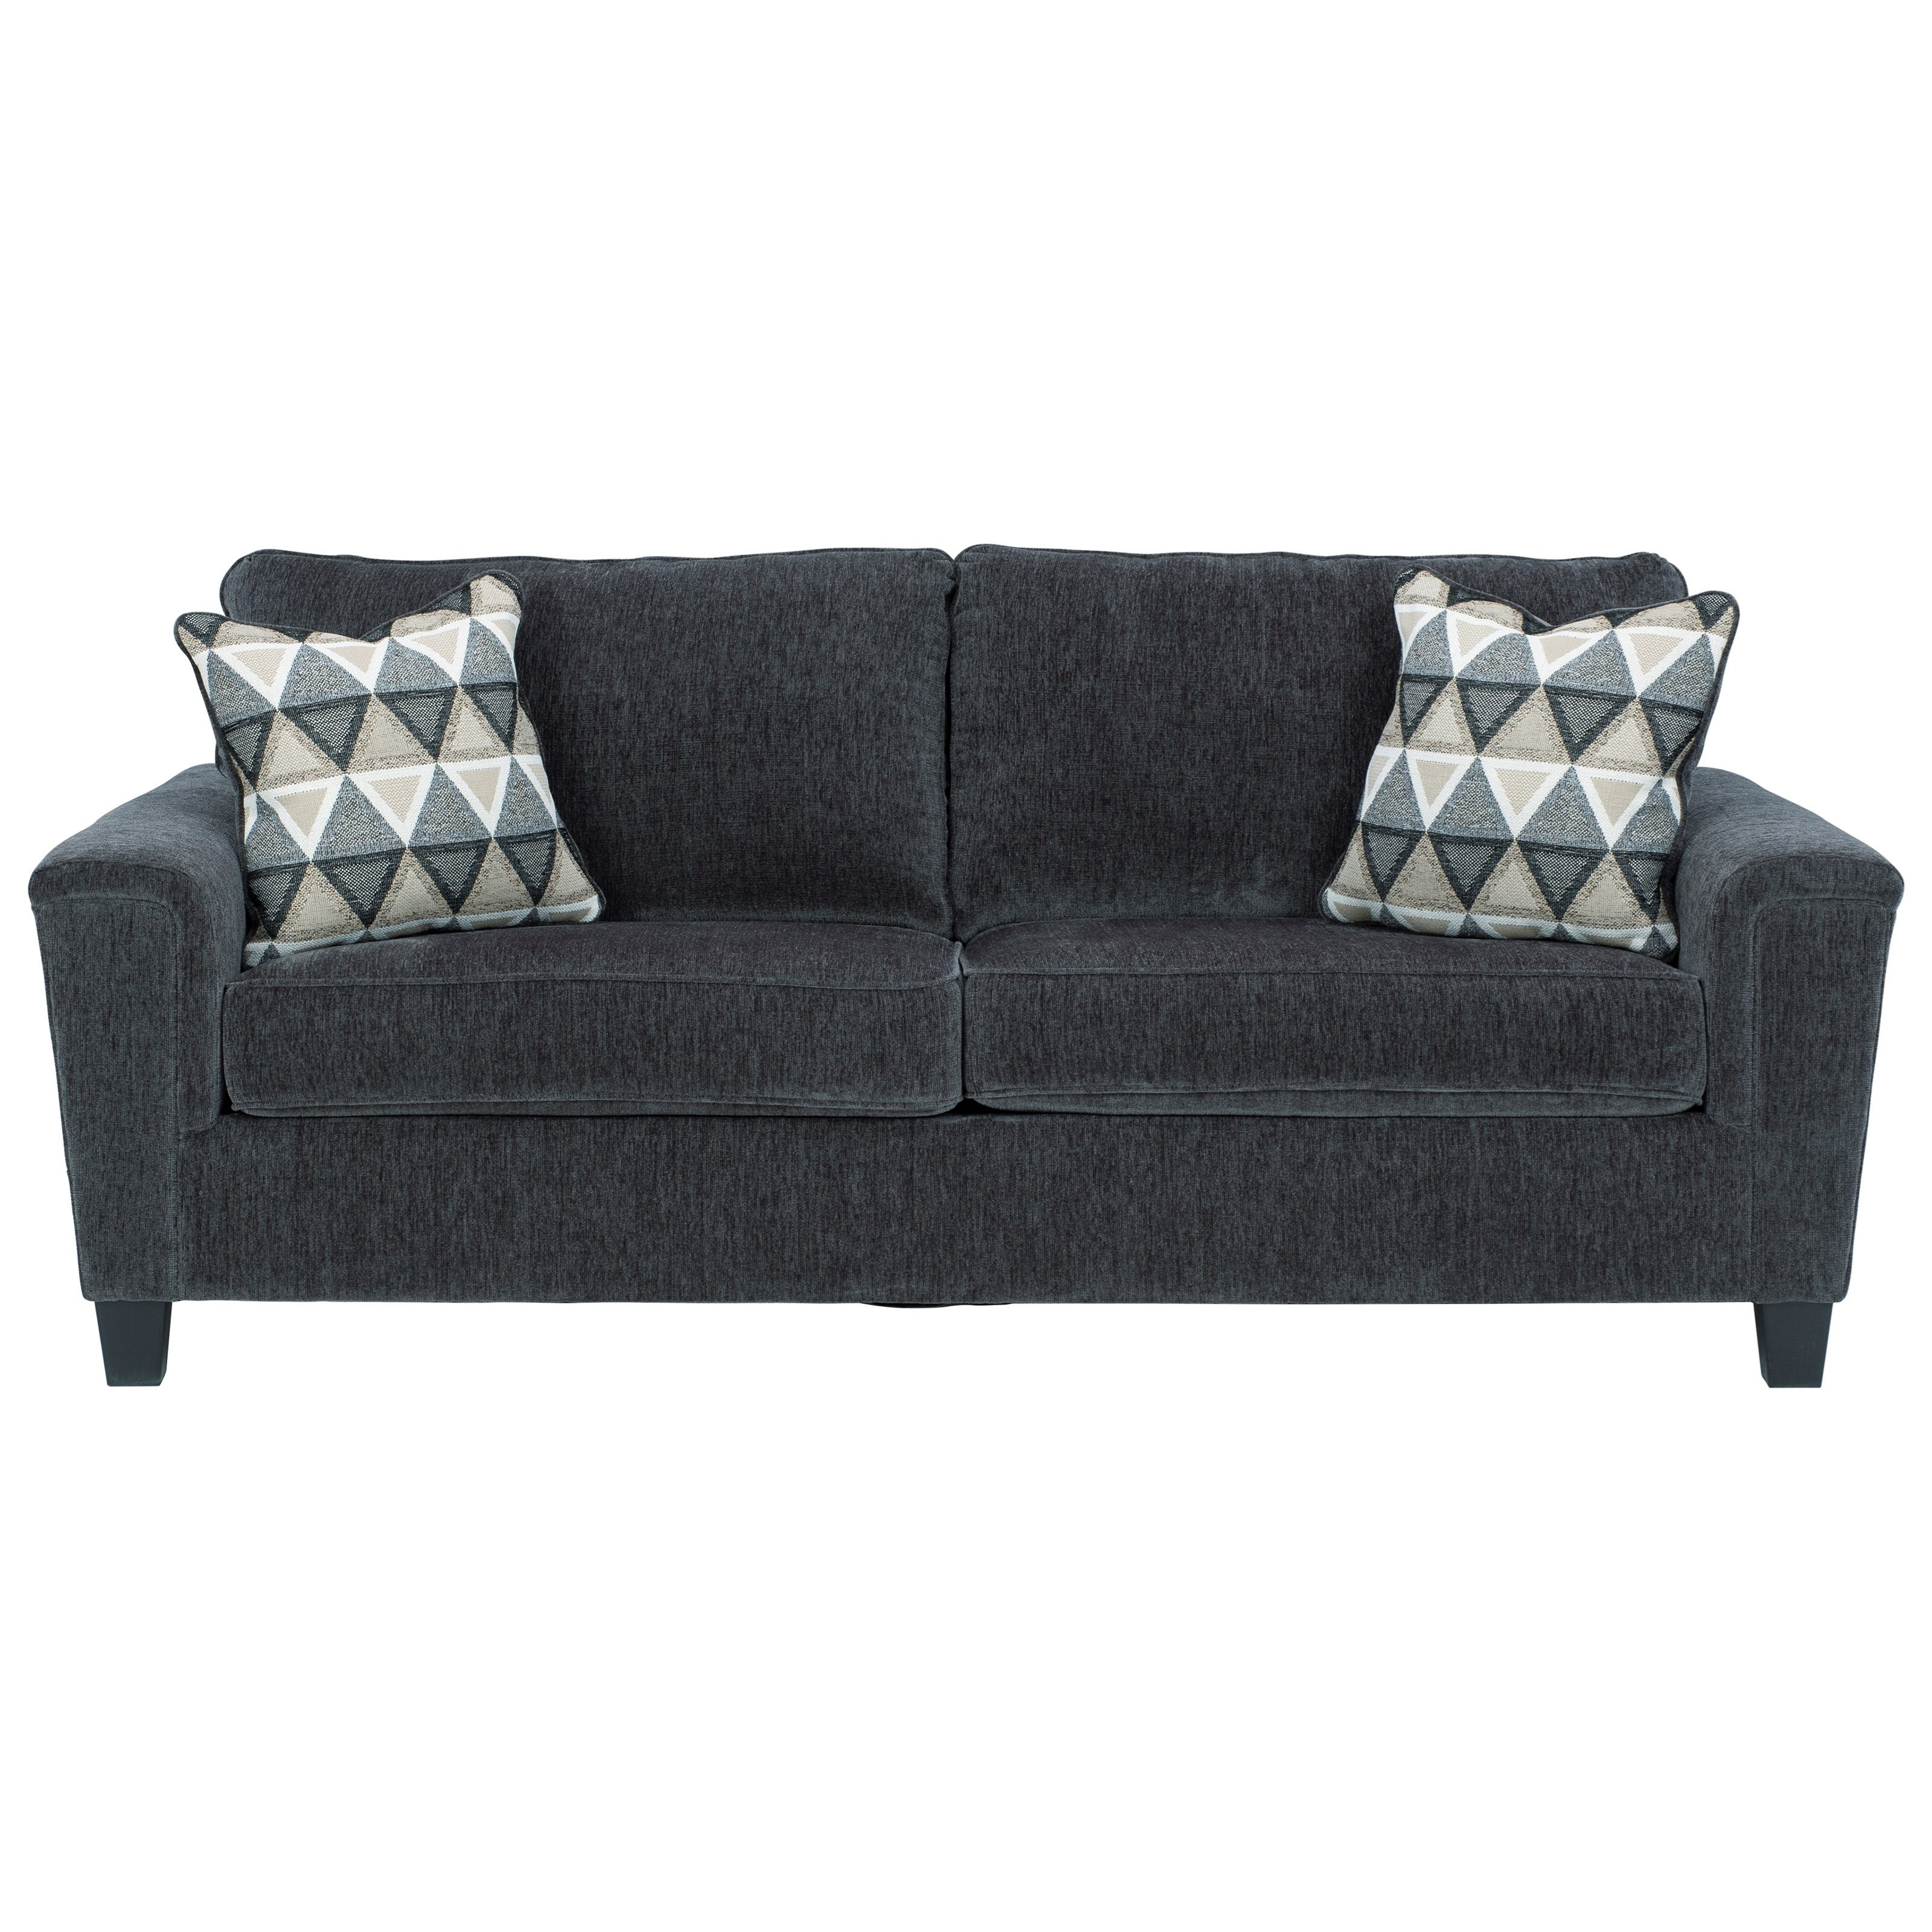 Abinger Queen Sofa Sleeper by Signature Design by Ashley at Beck's Furniture